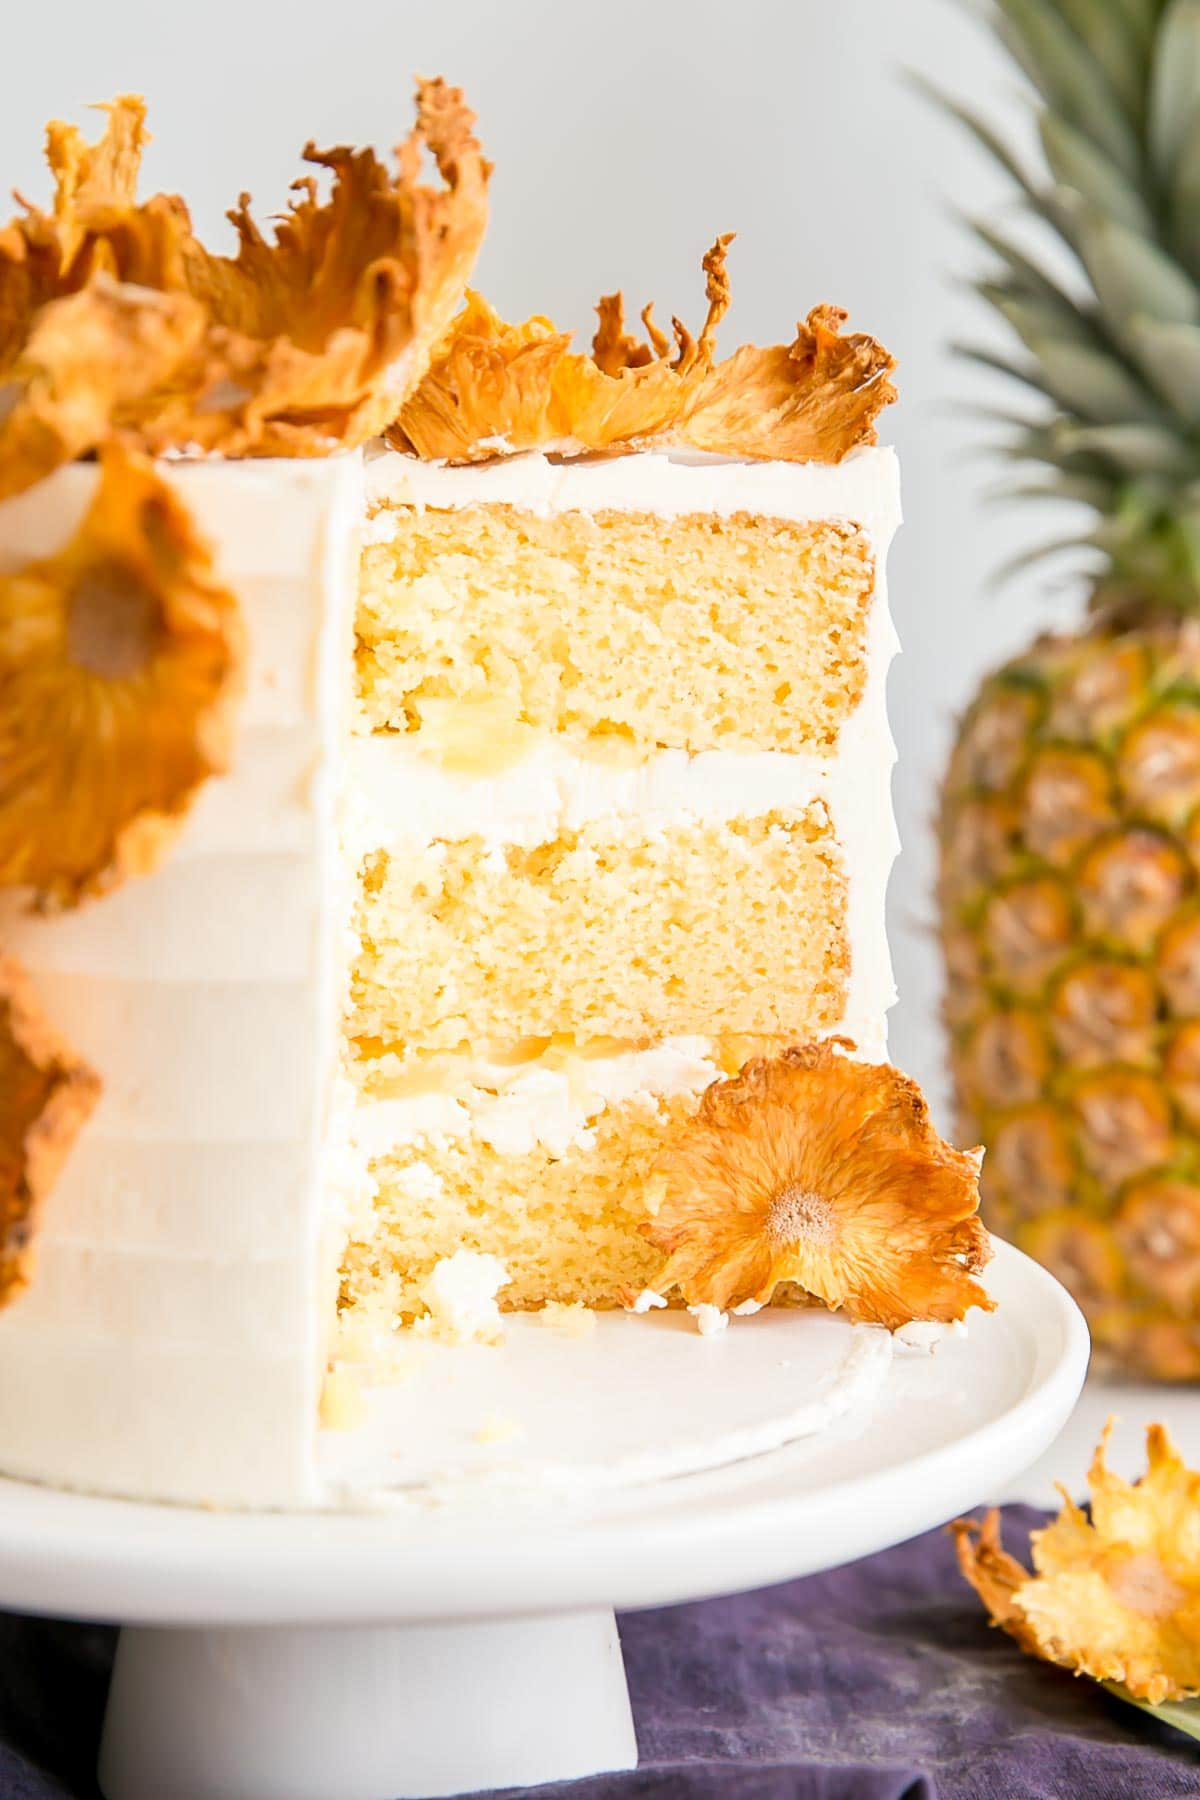 Pineapple cake with some slices cut out showing the cake layers.